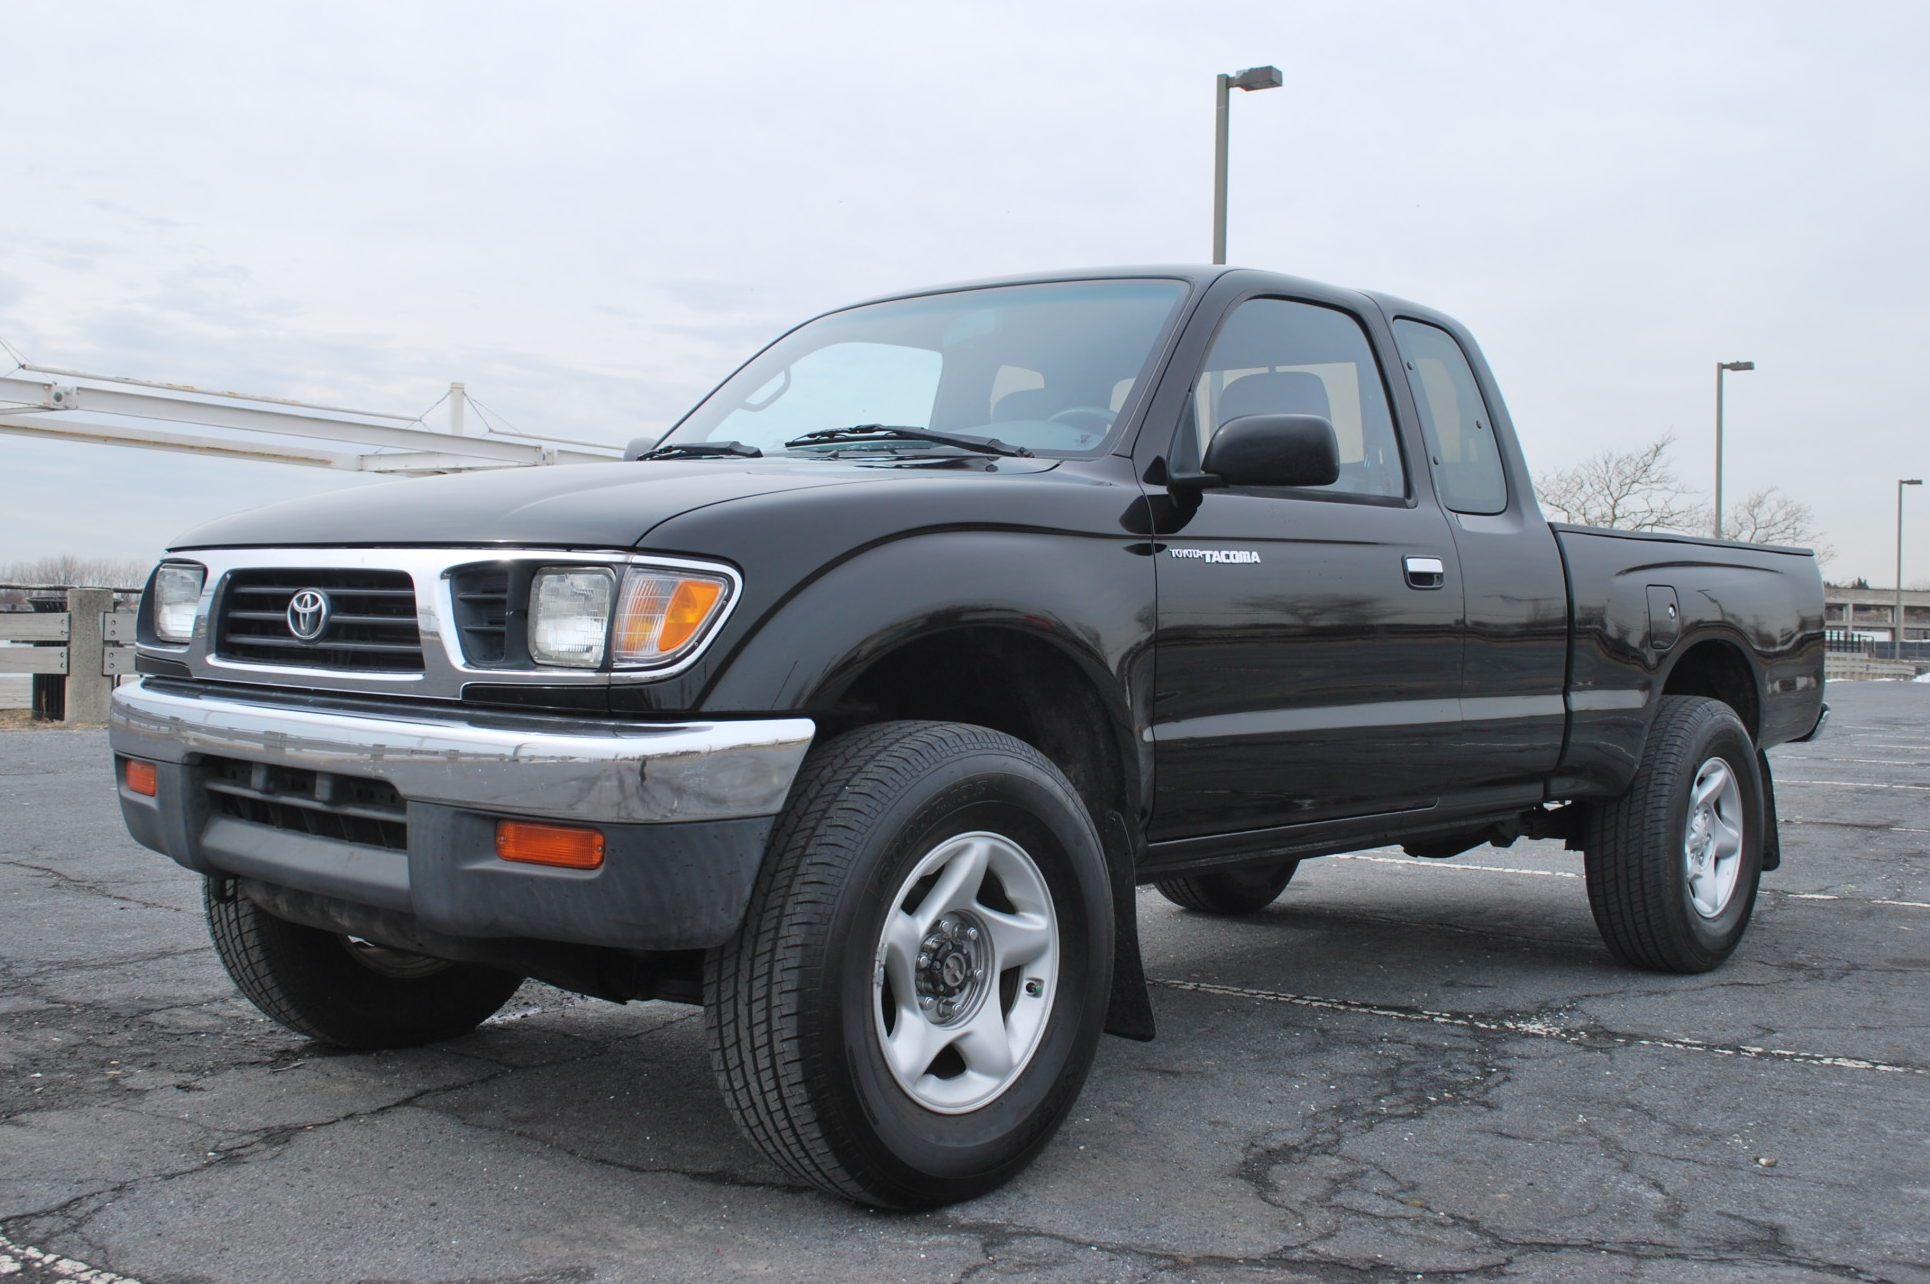 hight resolution of 1996 toyota tacoma sr5 xtracab 4x4 5 speed for sale on bat auctions closed on march 12 2019 lot 17 025 bring a trailer